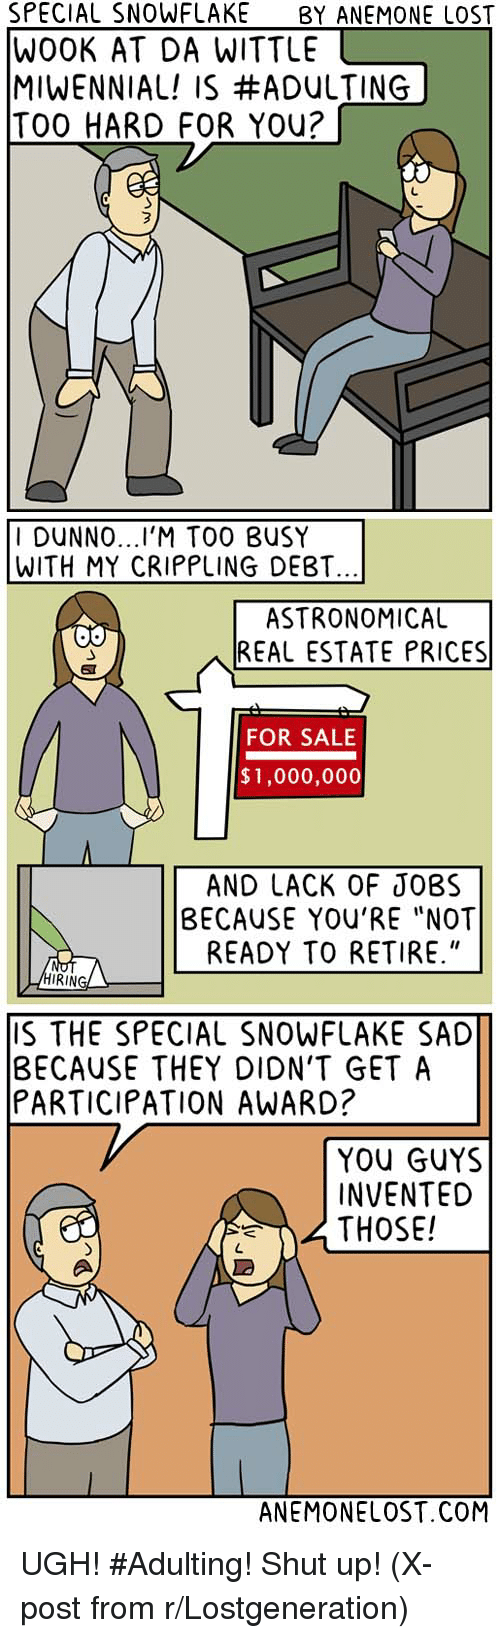 """Shut Up, Ups, and Lost: SPECIAL SNOWFLAKE  BY ANEMONE LOST  WOOK AT DA WITTLE  MIWENNIAL! IS #ADULTING  TOO HARD FOR You?  I DUNNO  TOO BUSY  WITH MY CRIPPLING DEBT.  ASTRONOMICAL  REAL ESTATE PRICES  FOR SALE  $1,000,000  AND LACK OF JOBS  BECAUSE YOU'RE """"NOT  READY TO RETIRE.""""  RING  S THE SPECIAL SNOWFLAKE SAD  BECAUSE THEY DION'T GET A  PARTICIPATION AWARD?  YOU GUYS  INVENTED  THOSE!  ANEMONELOST.COM UGH! #Adulting! Shut up! (X-post from r/Lostgeneration)"""